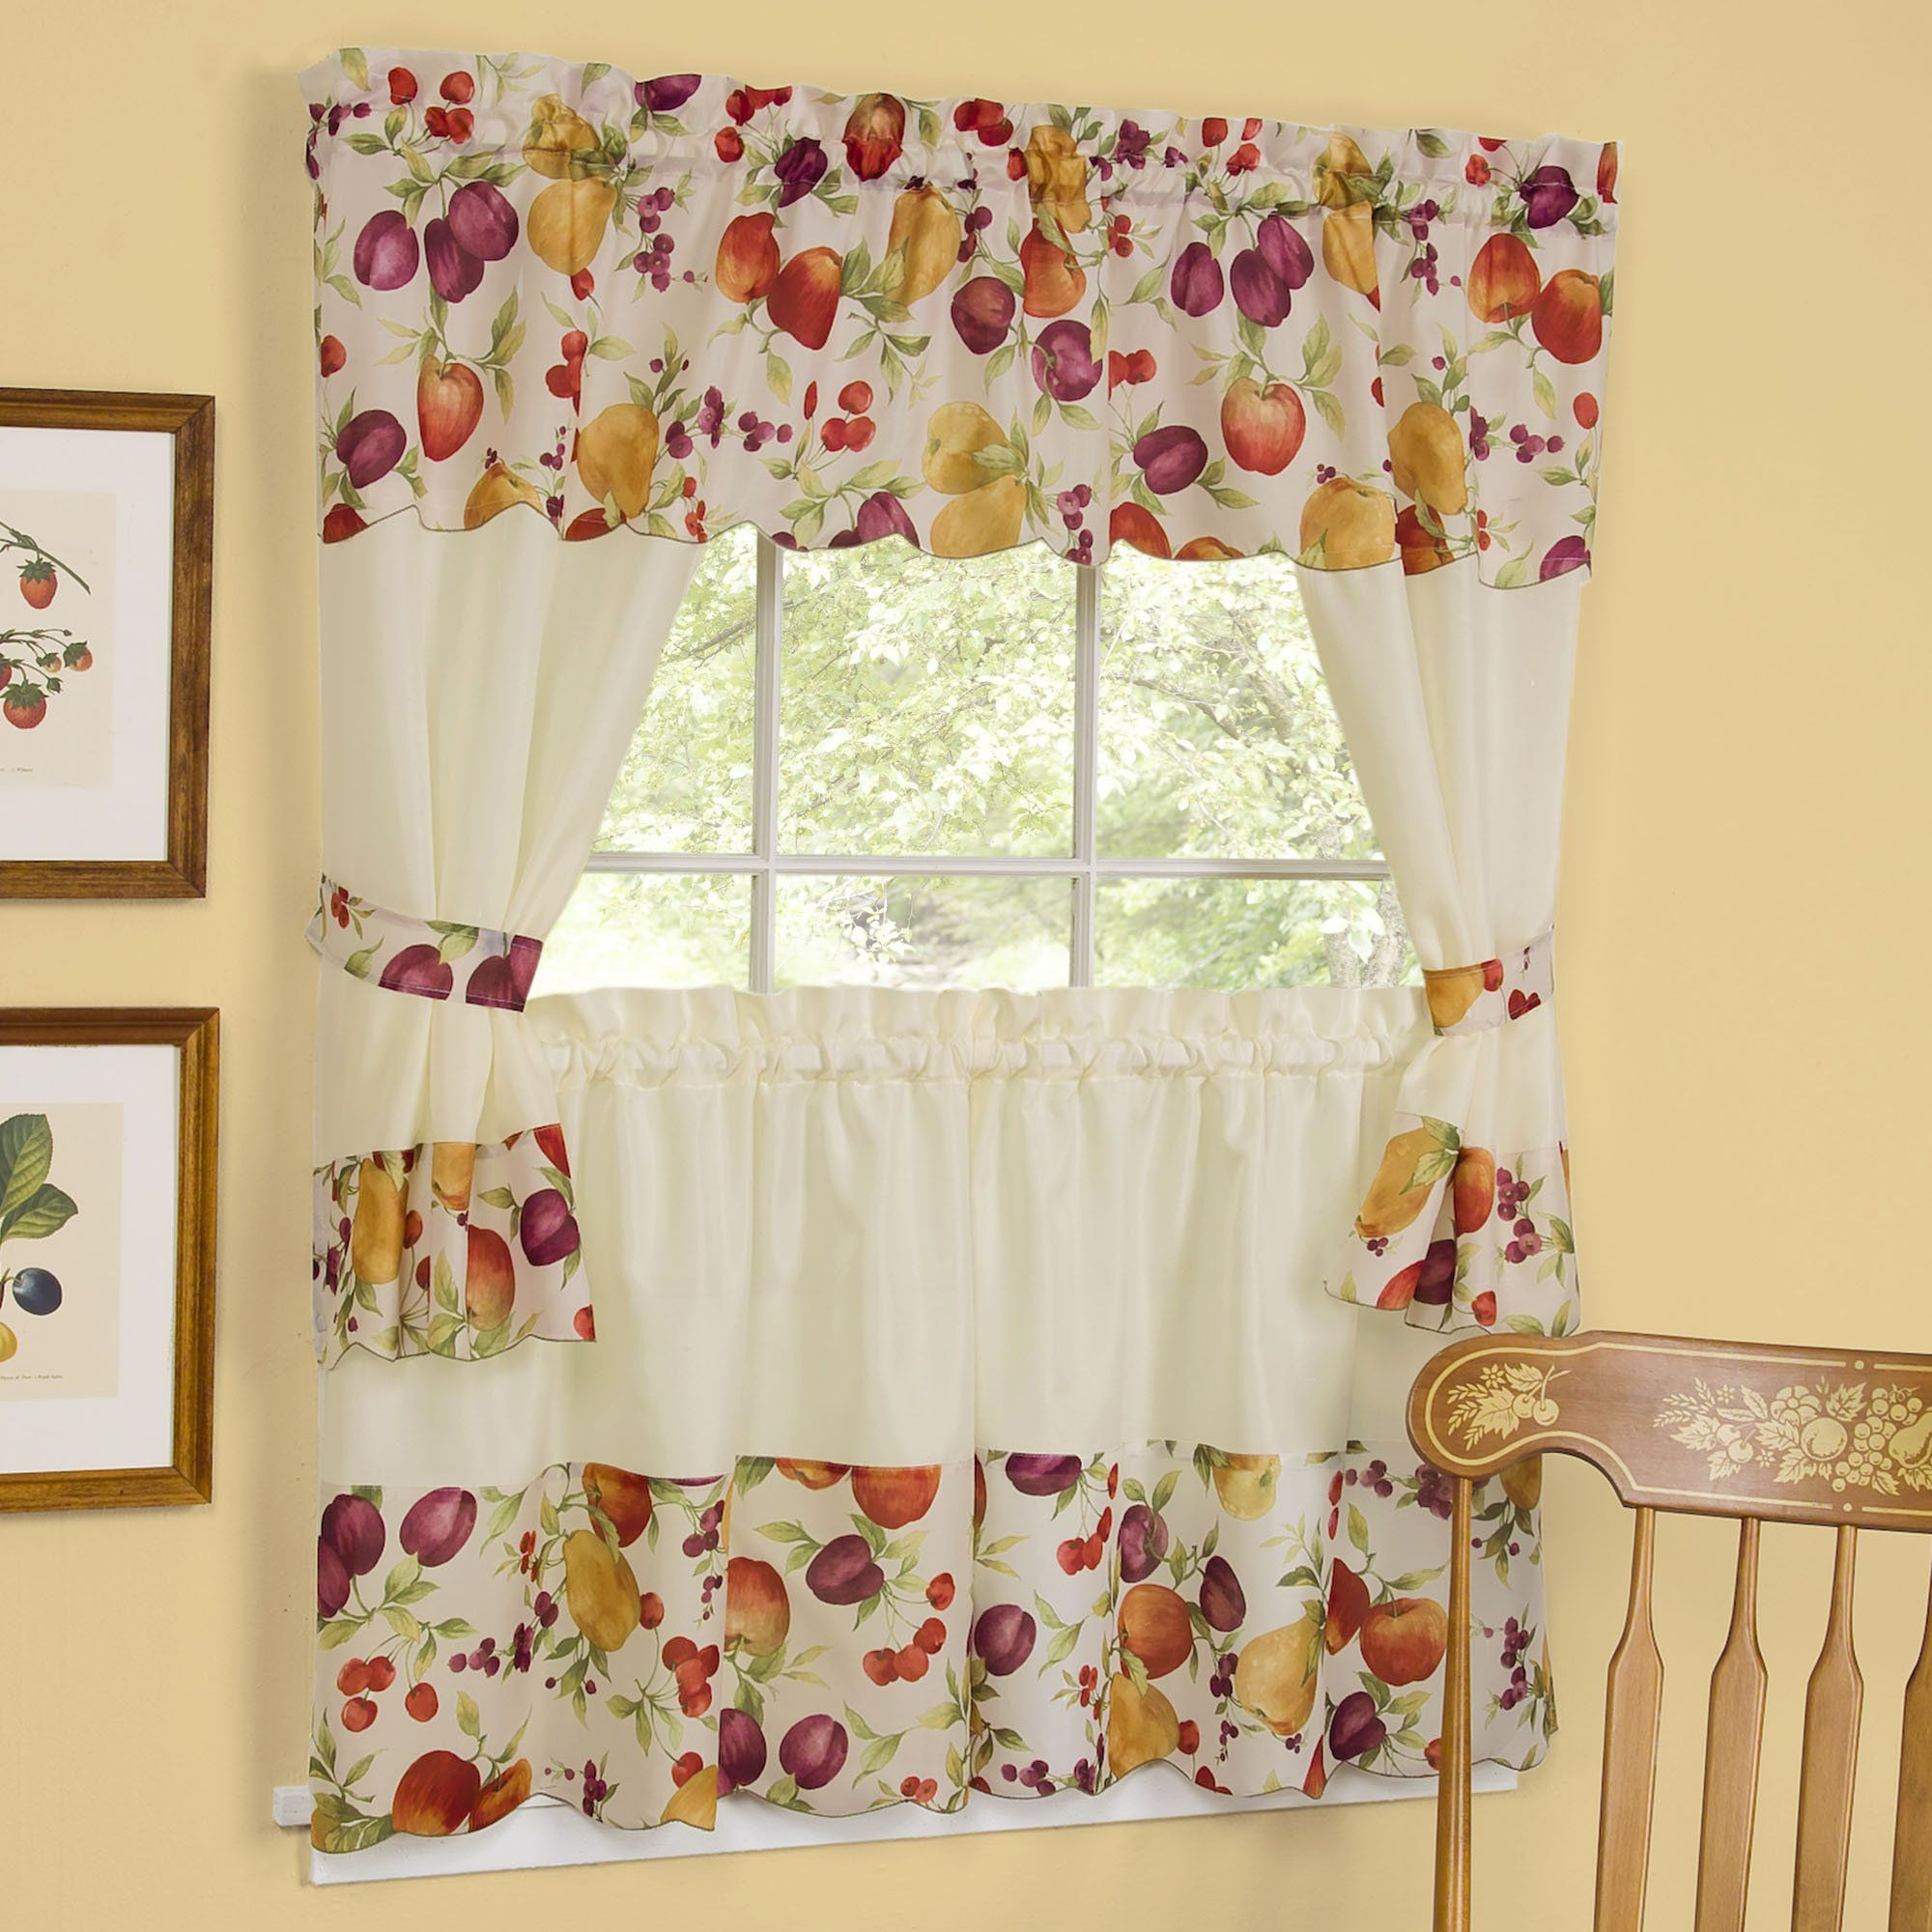 Kitchen Curtains Fruit Design Interior Paint Color Trends Check More At Http Mindlessapparel Com Kitchen Curtains F Cottage Curtains Cool Curtains Curtains Kitchen curtains with fruit design